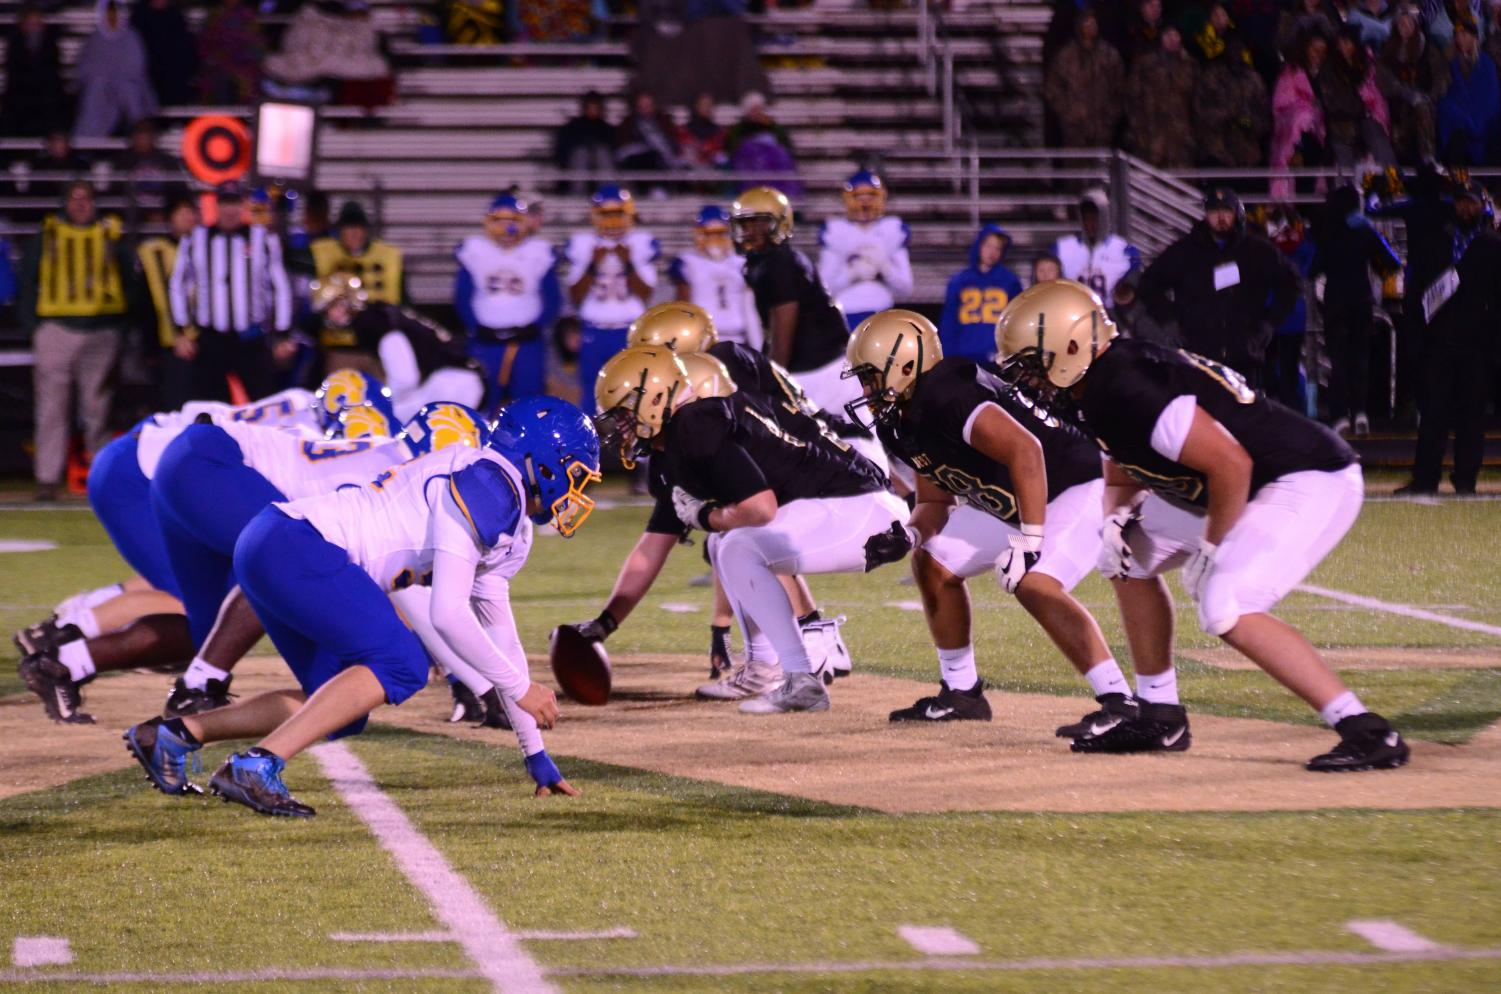 The offensive line sets up before a crucial third down play against Davenport North on Oct. 11 at Trojan Field.